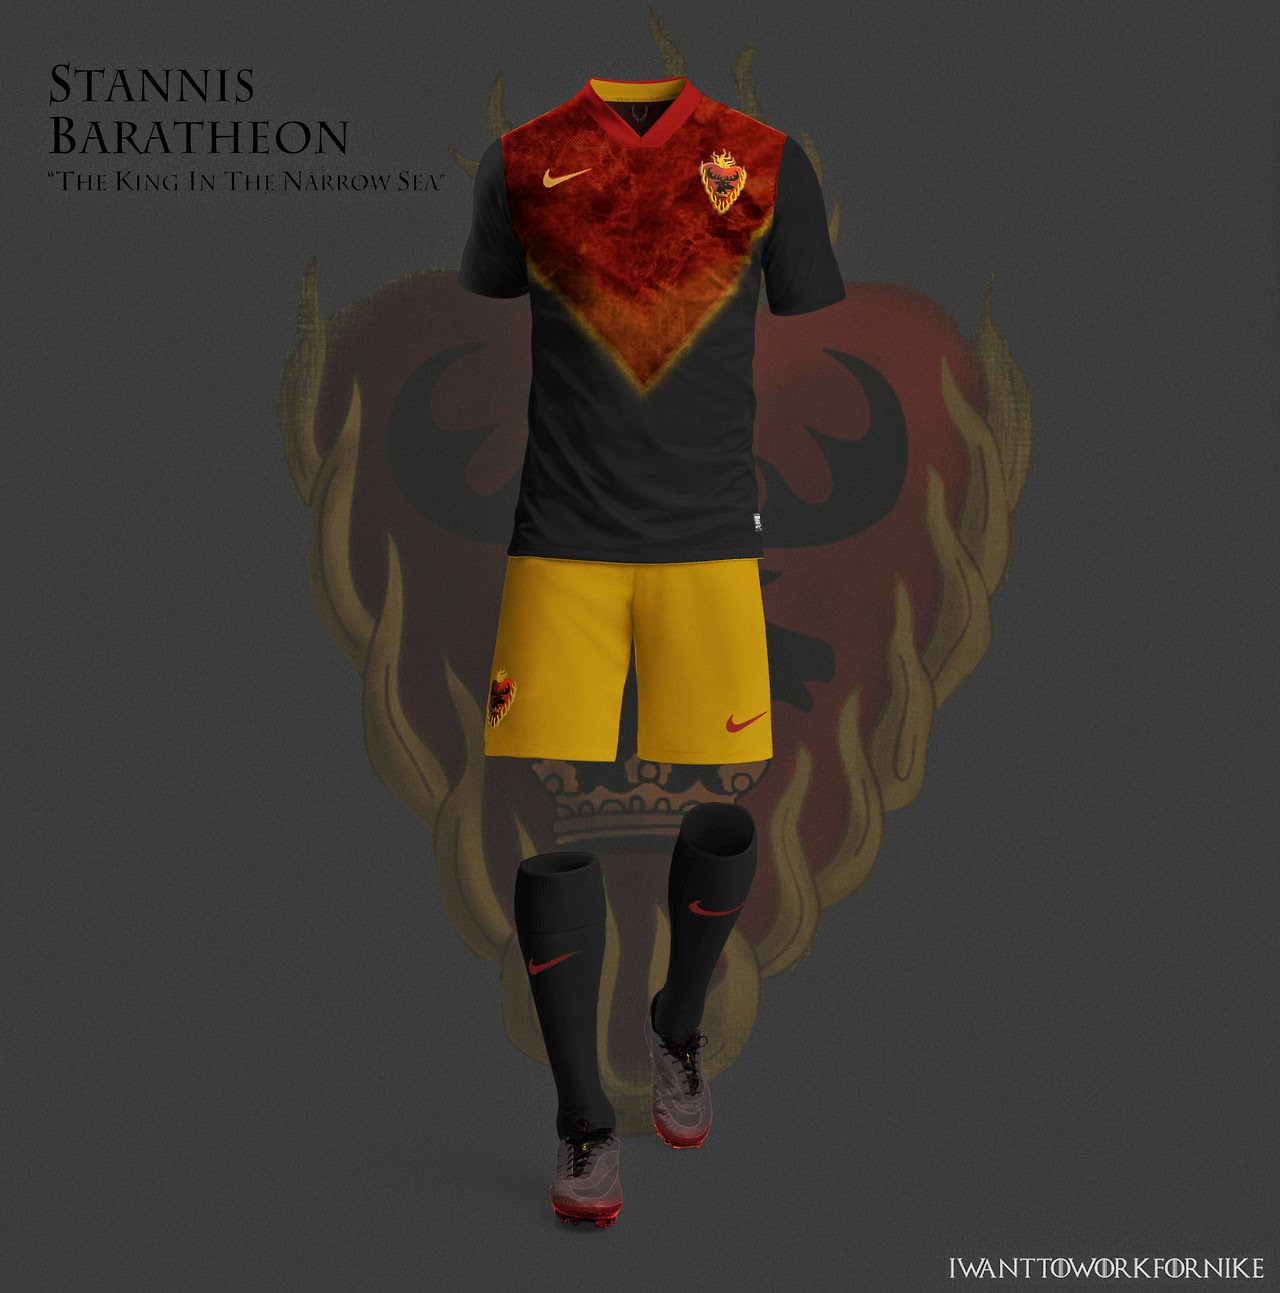 I WANT TO WORK FOR NIKE - Game Of Thrones House Themed World Cup Kits